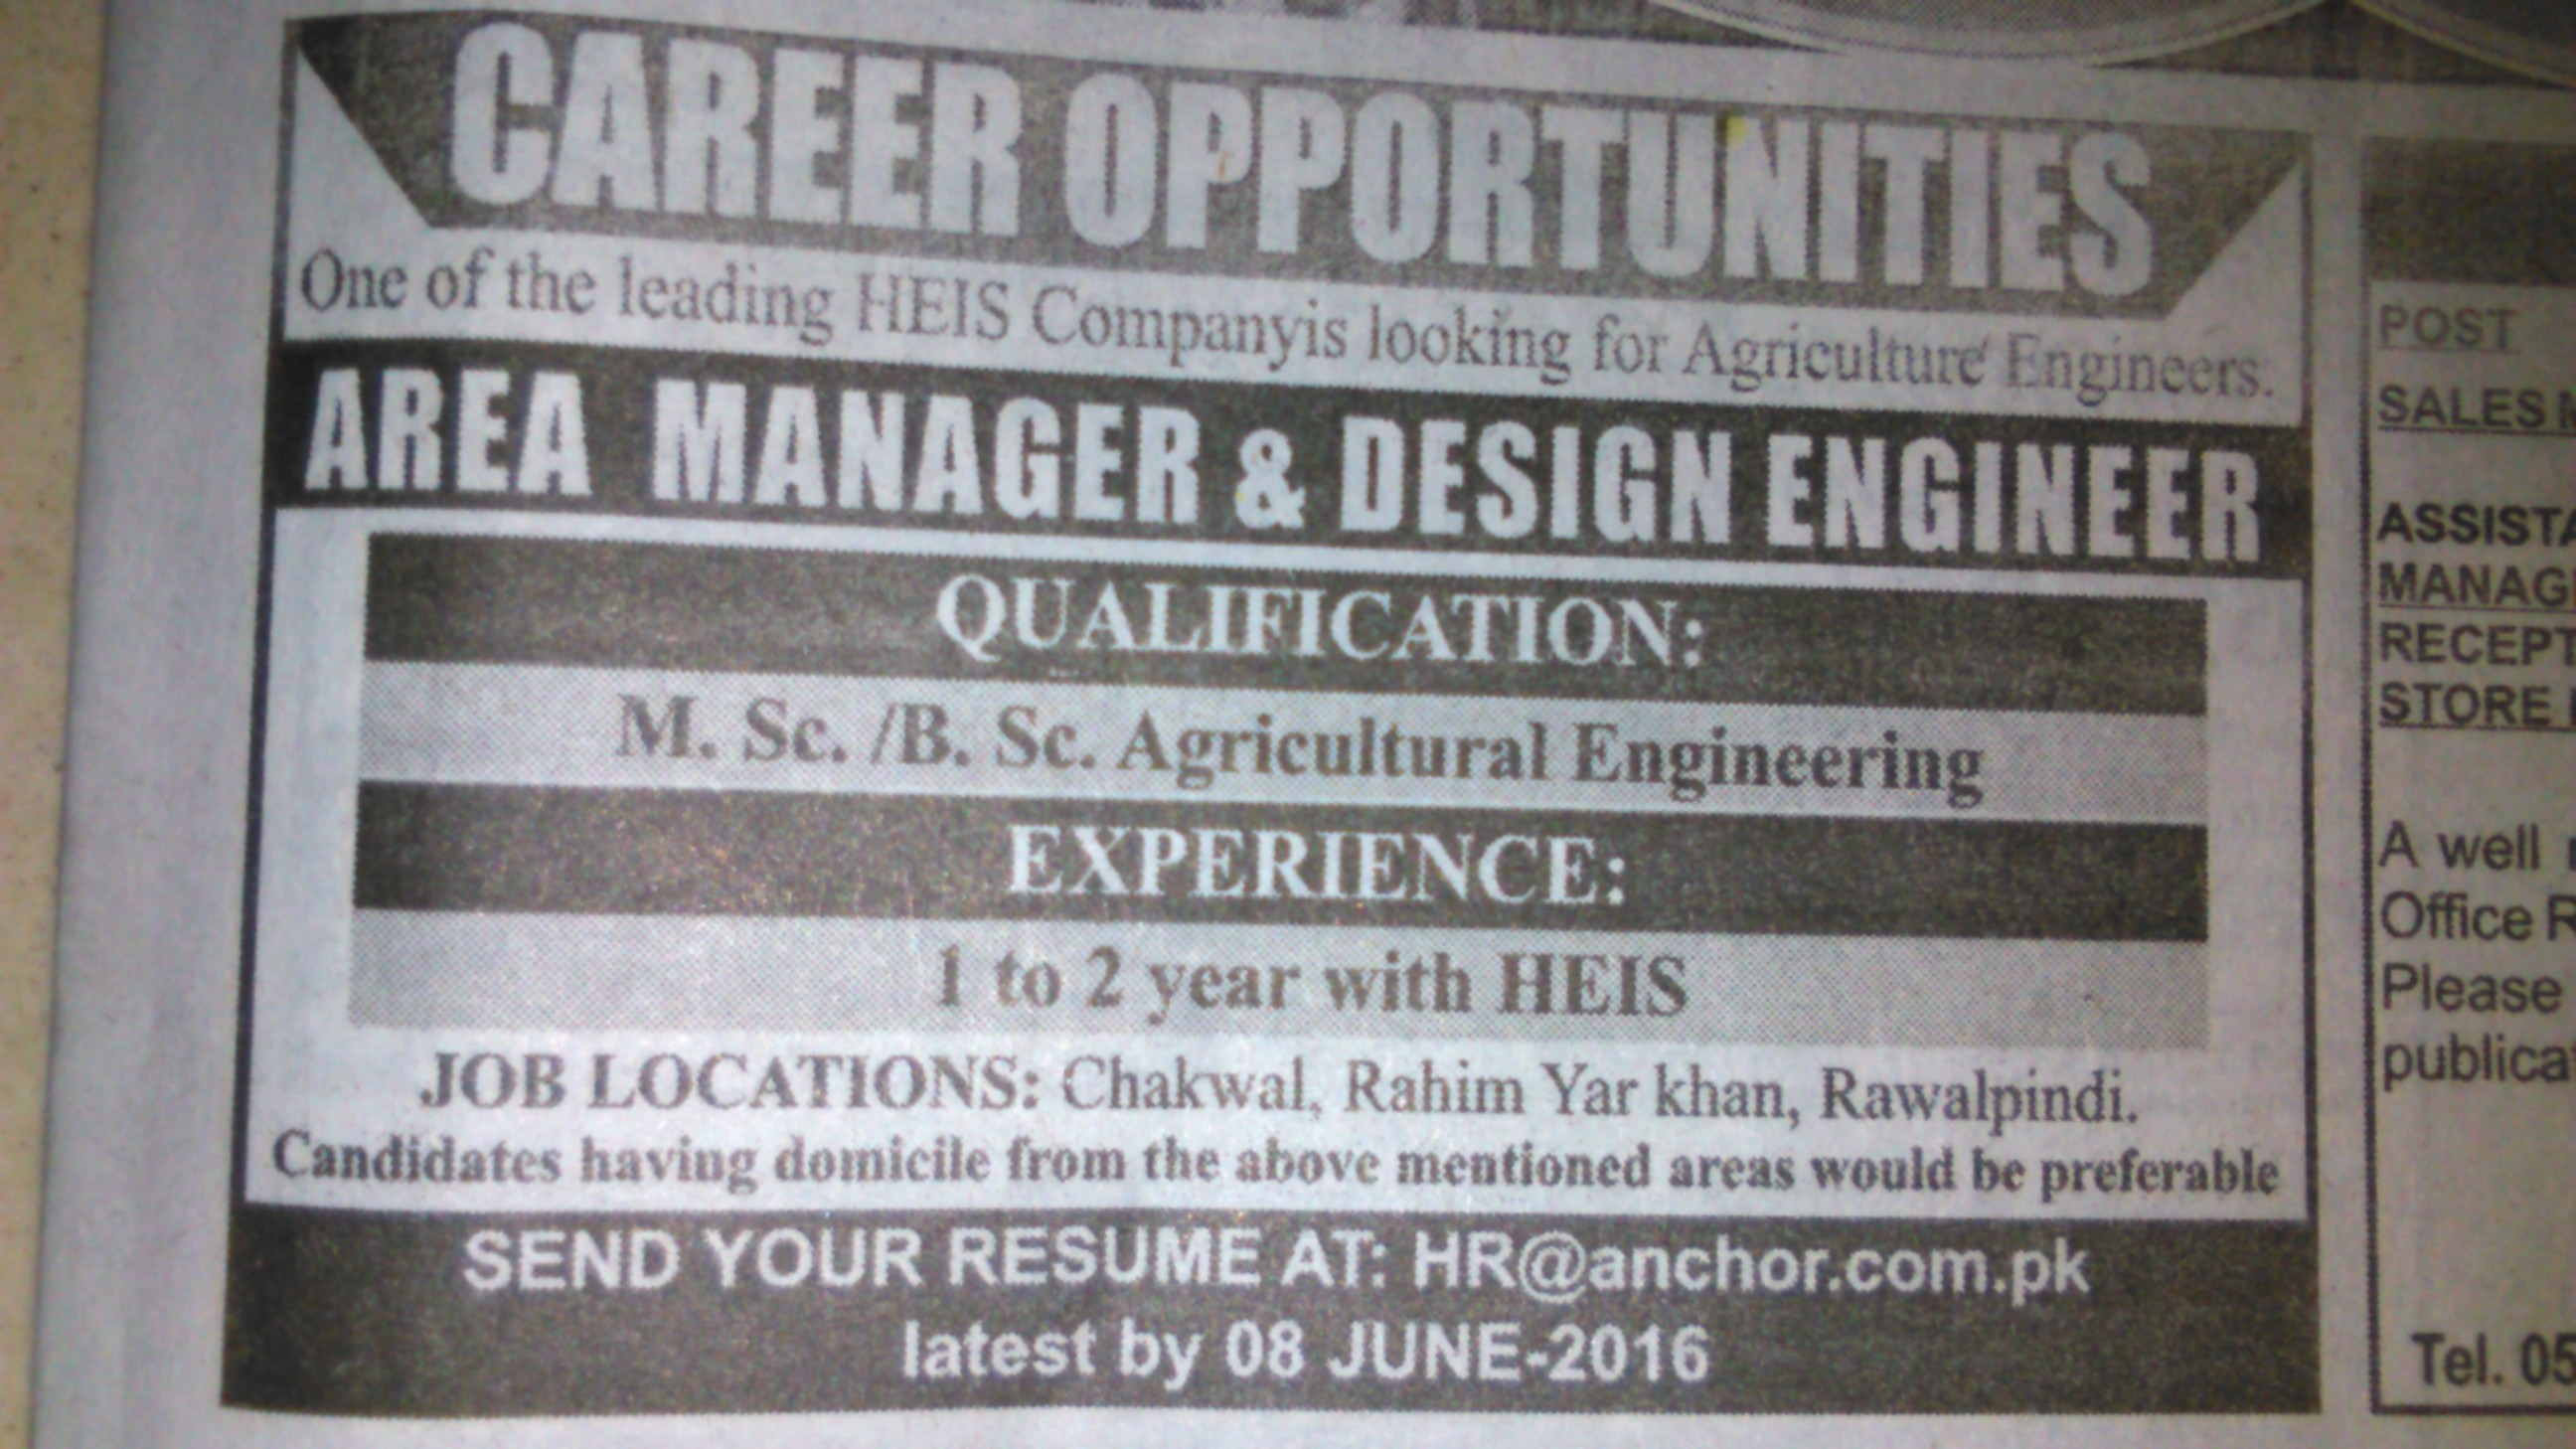 Area Manager and Design Engineer Required